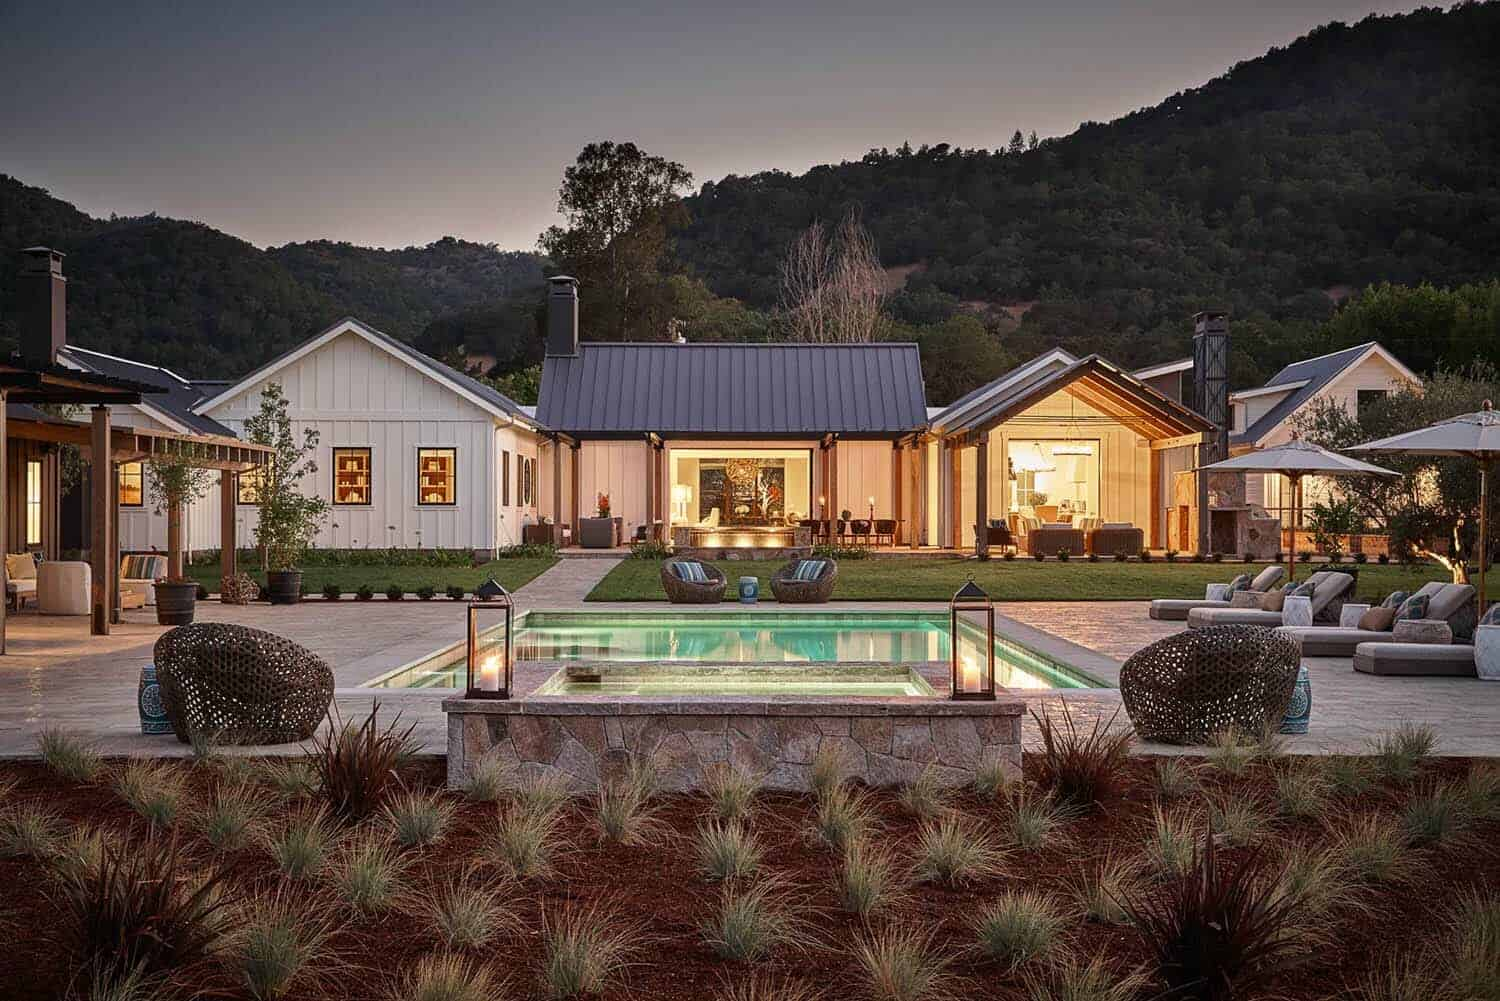 Delightful contemporary farmhouse nestled in Napa wine country on Farmhouse Outdoor Living Space id=89433